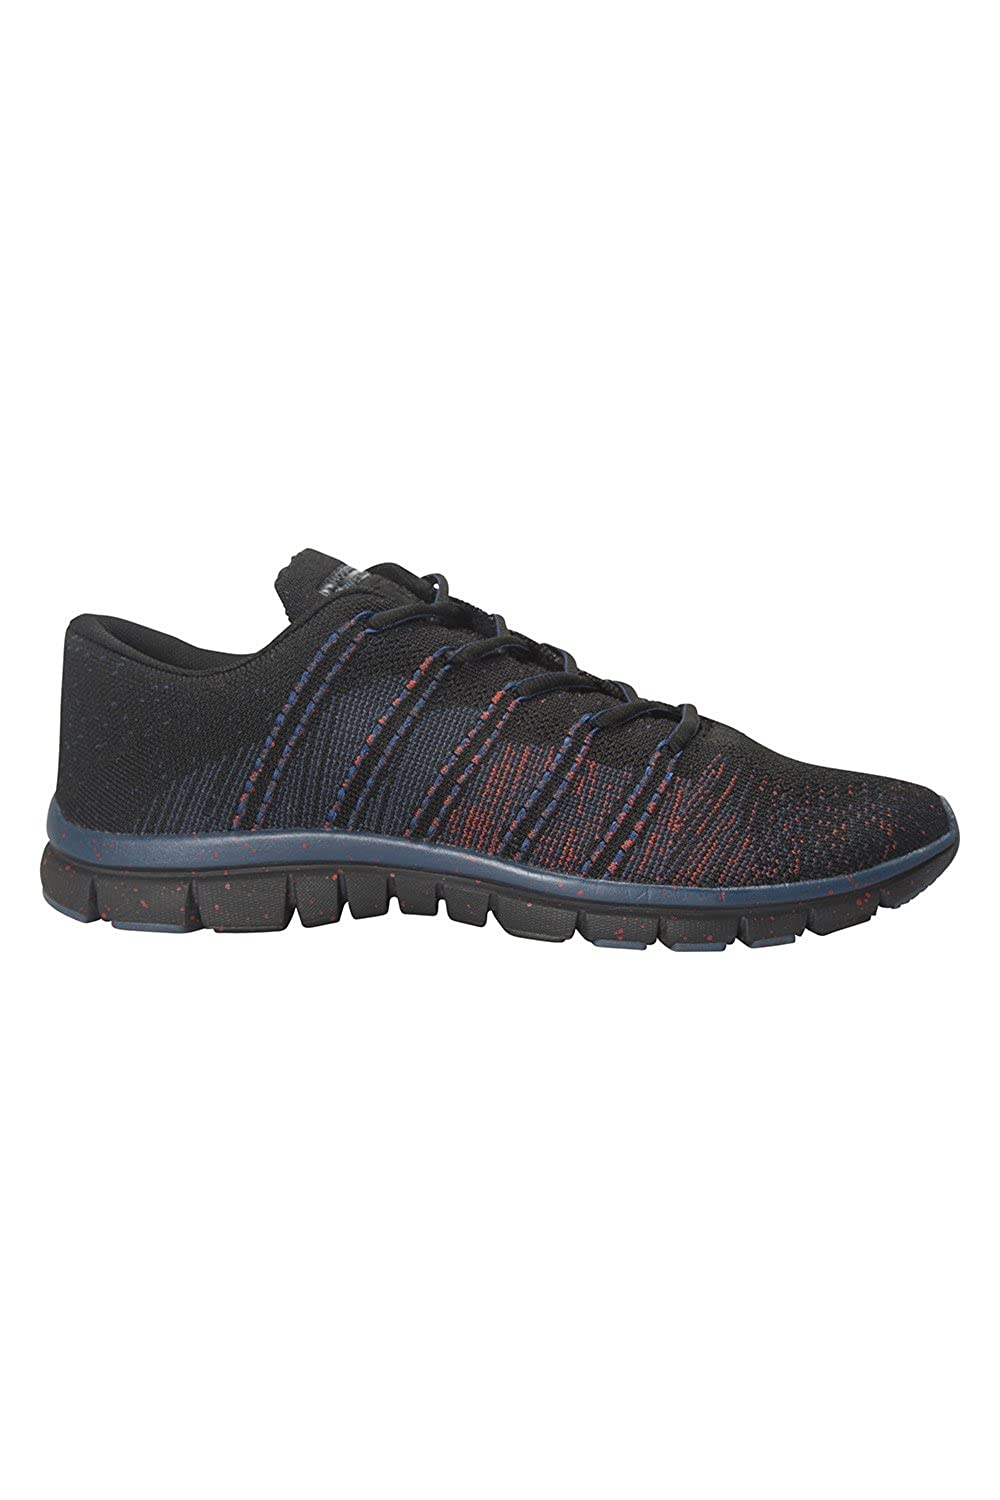 Mountain Warehouse Pronto Mens Sneakers - Durable & Breathable Synthetic &  Mesh Upper with Mesh Lining, Rubber Outsole - A Solution for Fast Paced ...